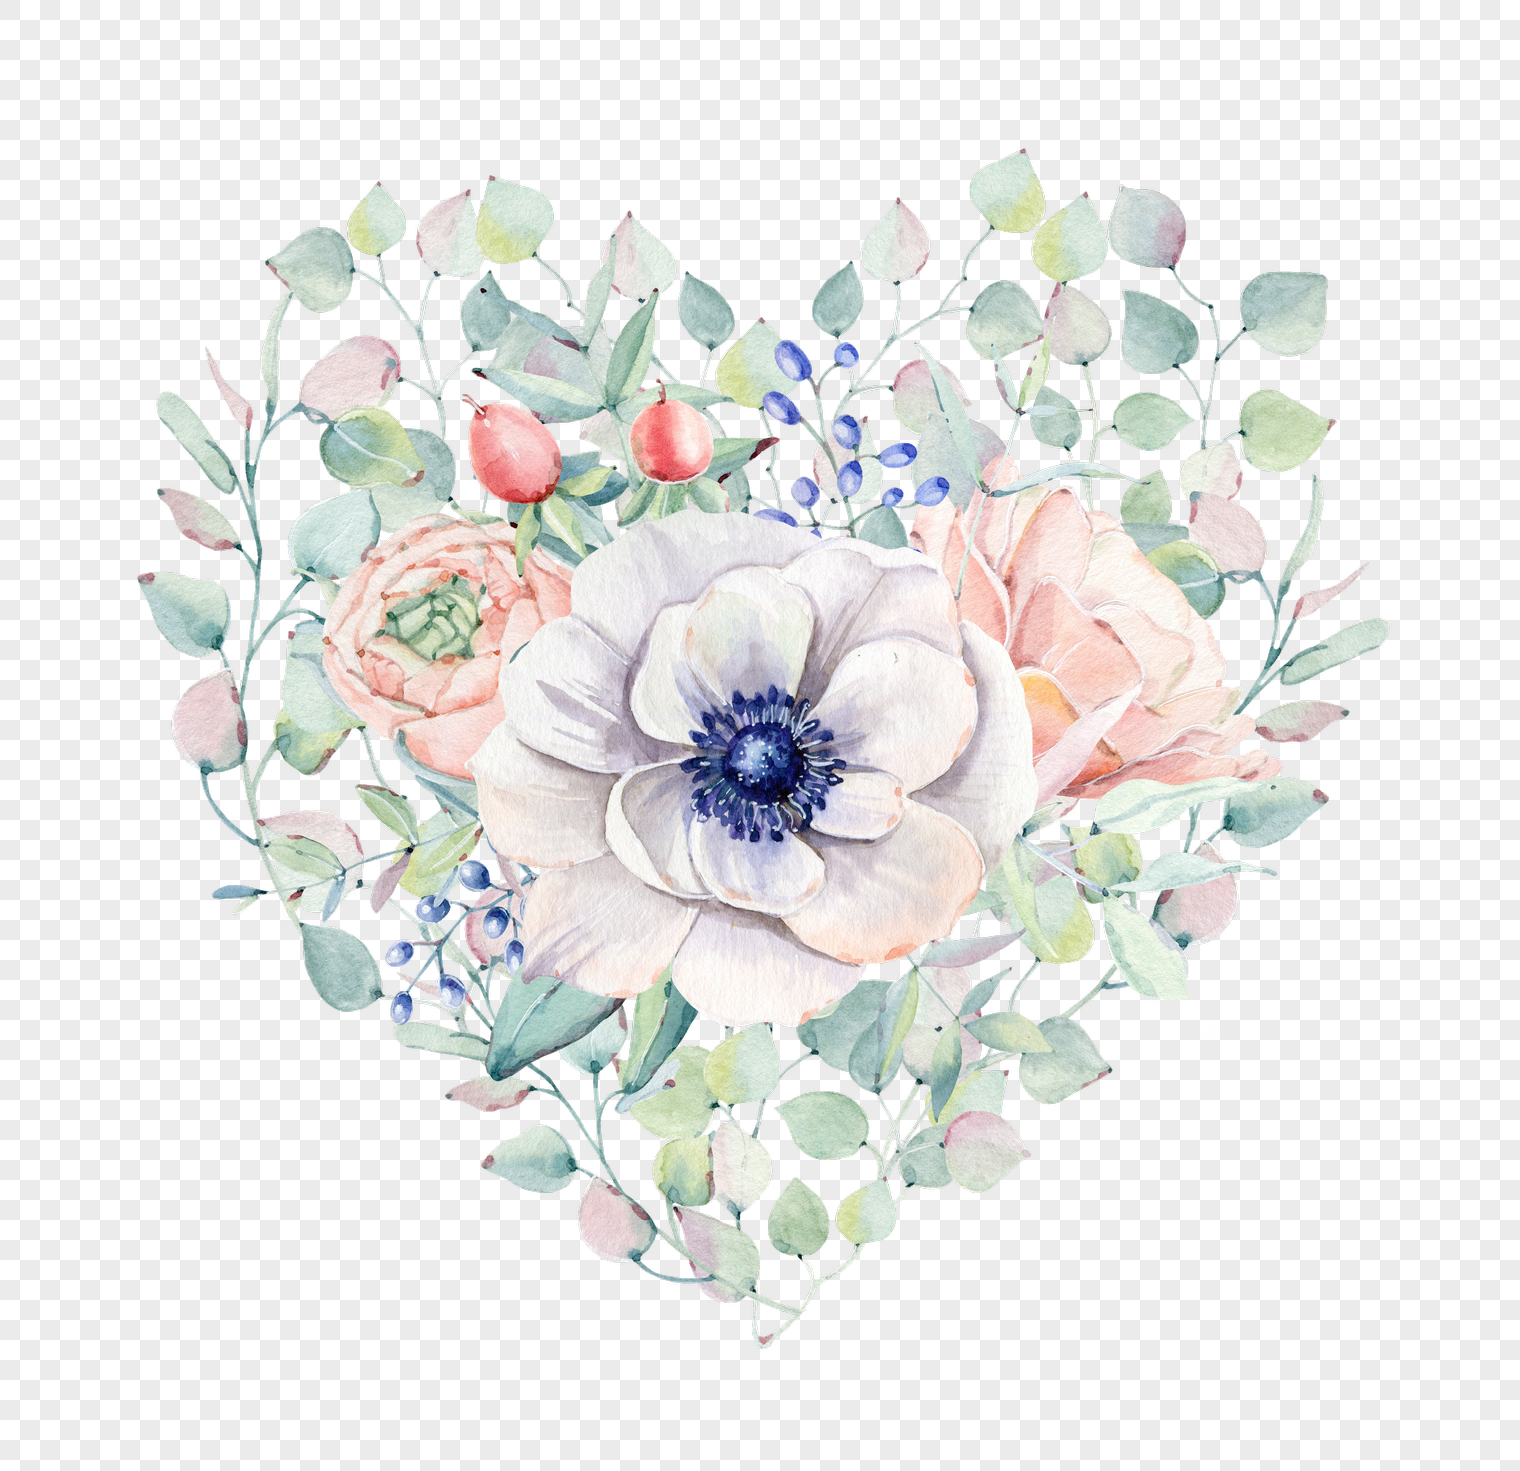 Hand Painted Simple White Flowers Png Imagepicture Free Download